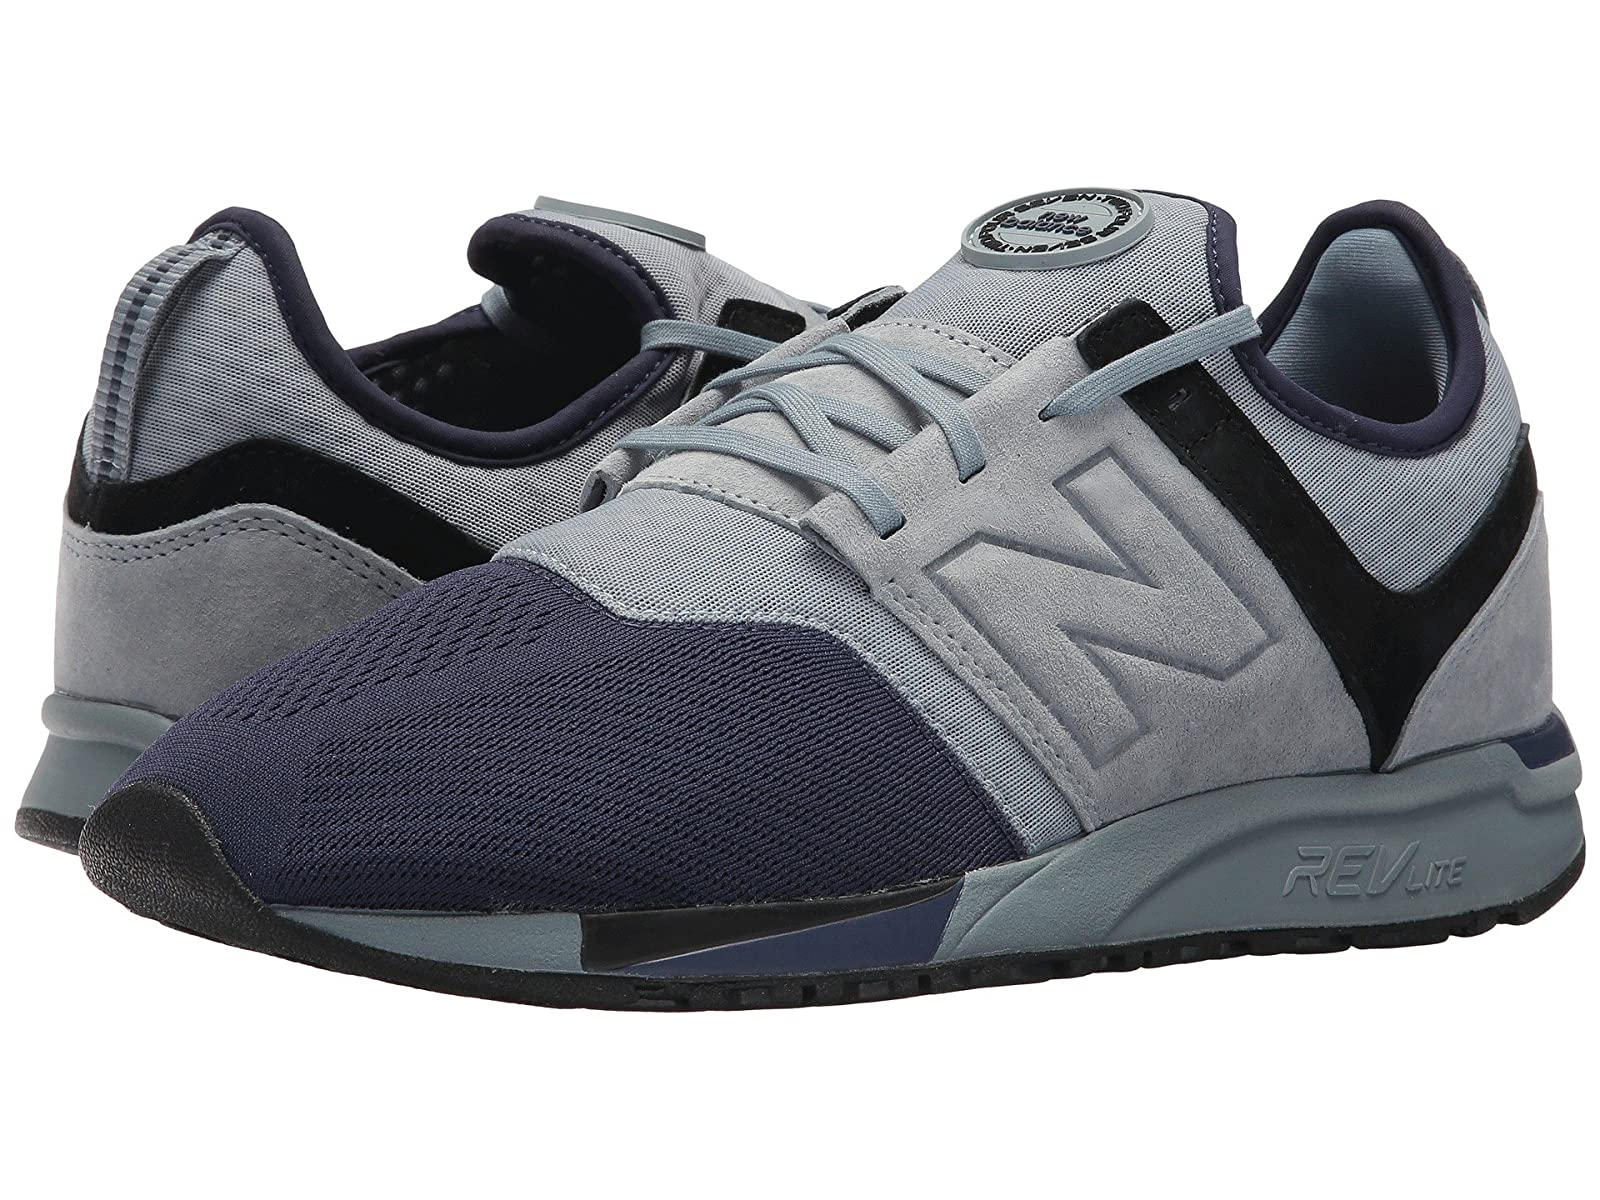 New Balance Classics MRL247v1Cheap and distinctive eye-catching shoes